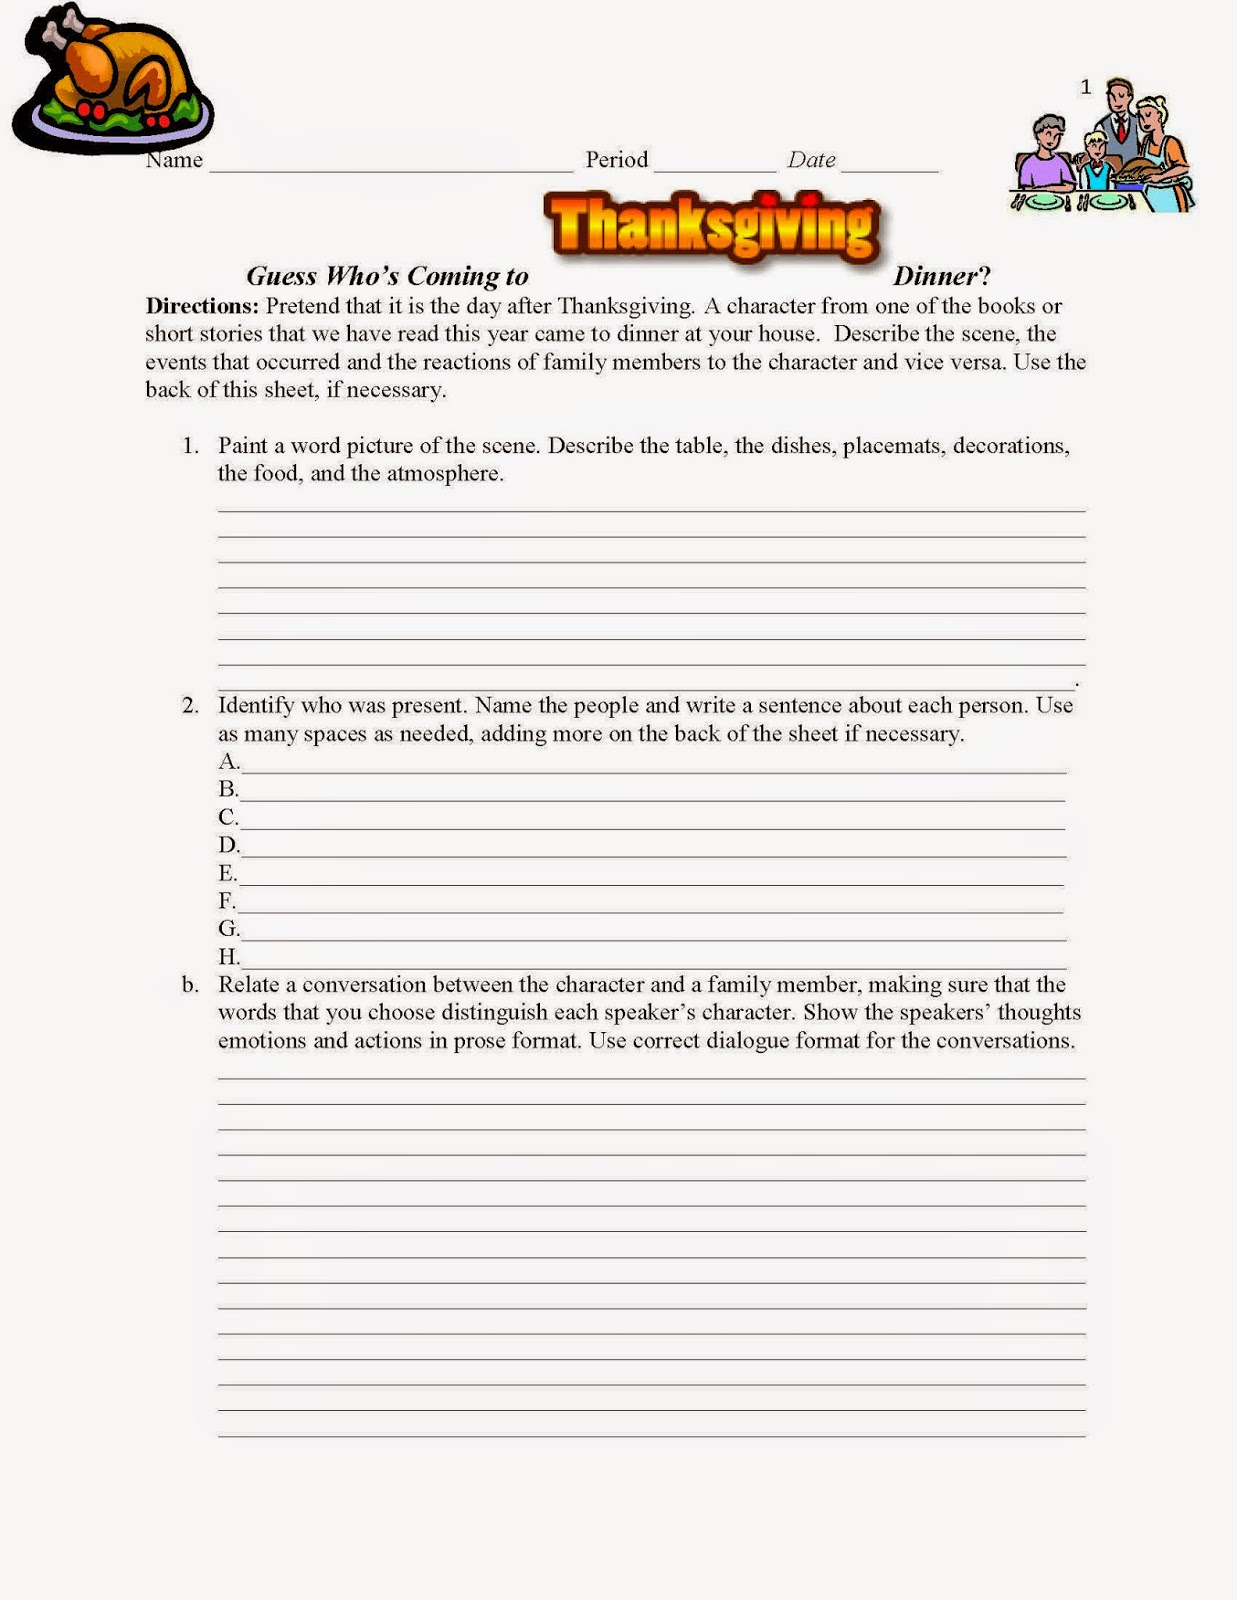 Comprehension Activity: Guess Who's Coming to Thanksgiving Dinner?